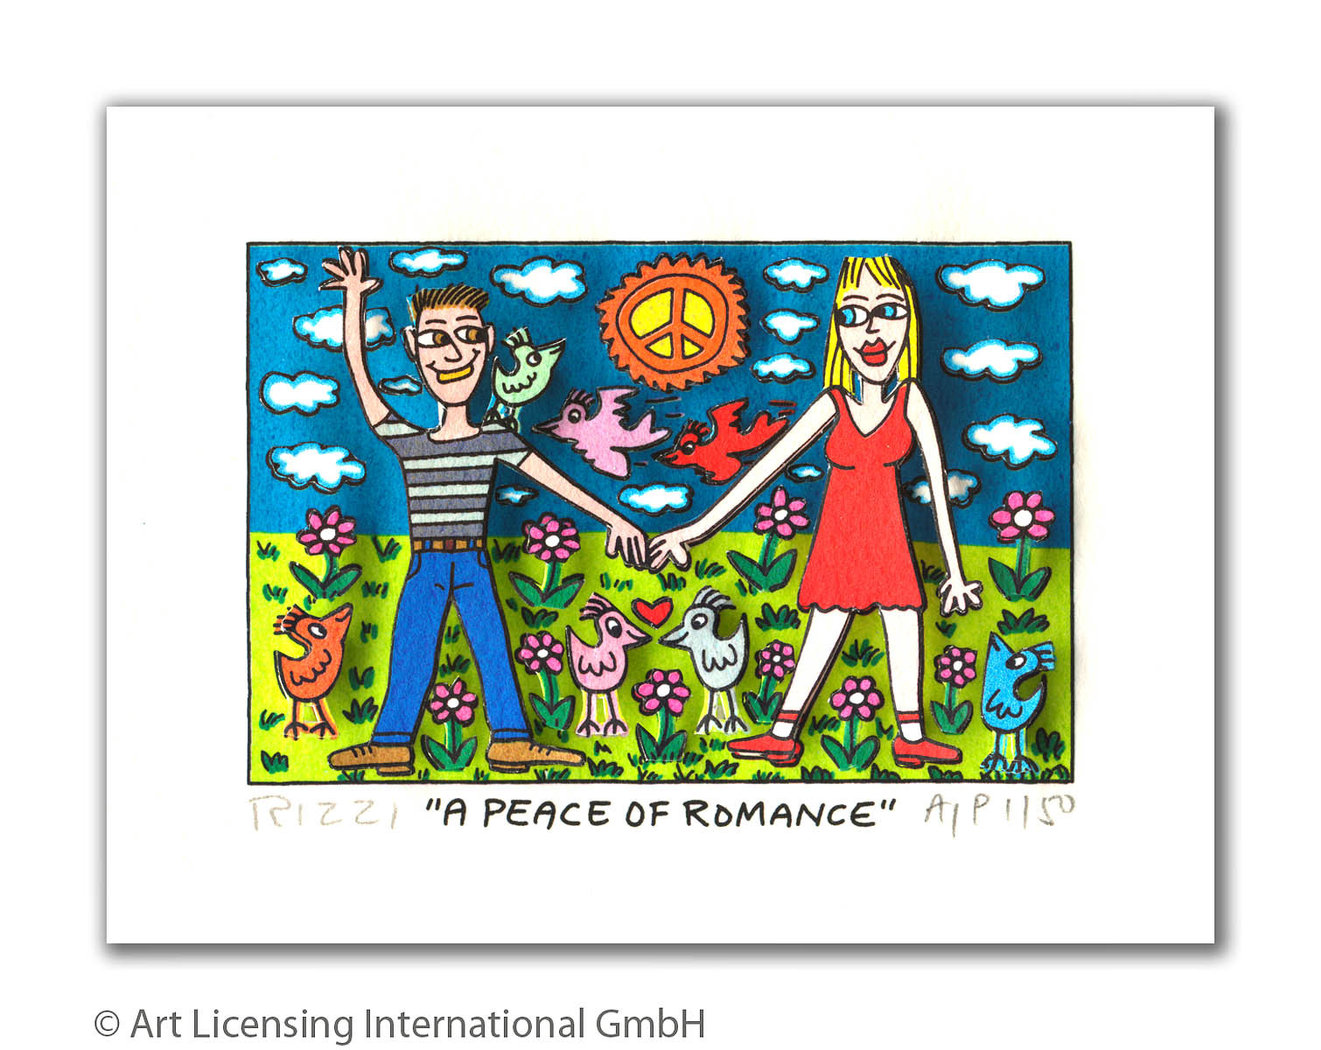 James Rizzi - A PEACE OF ROMANCE